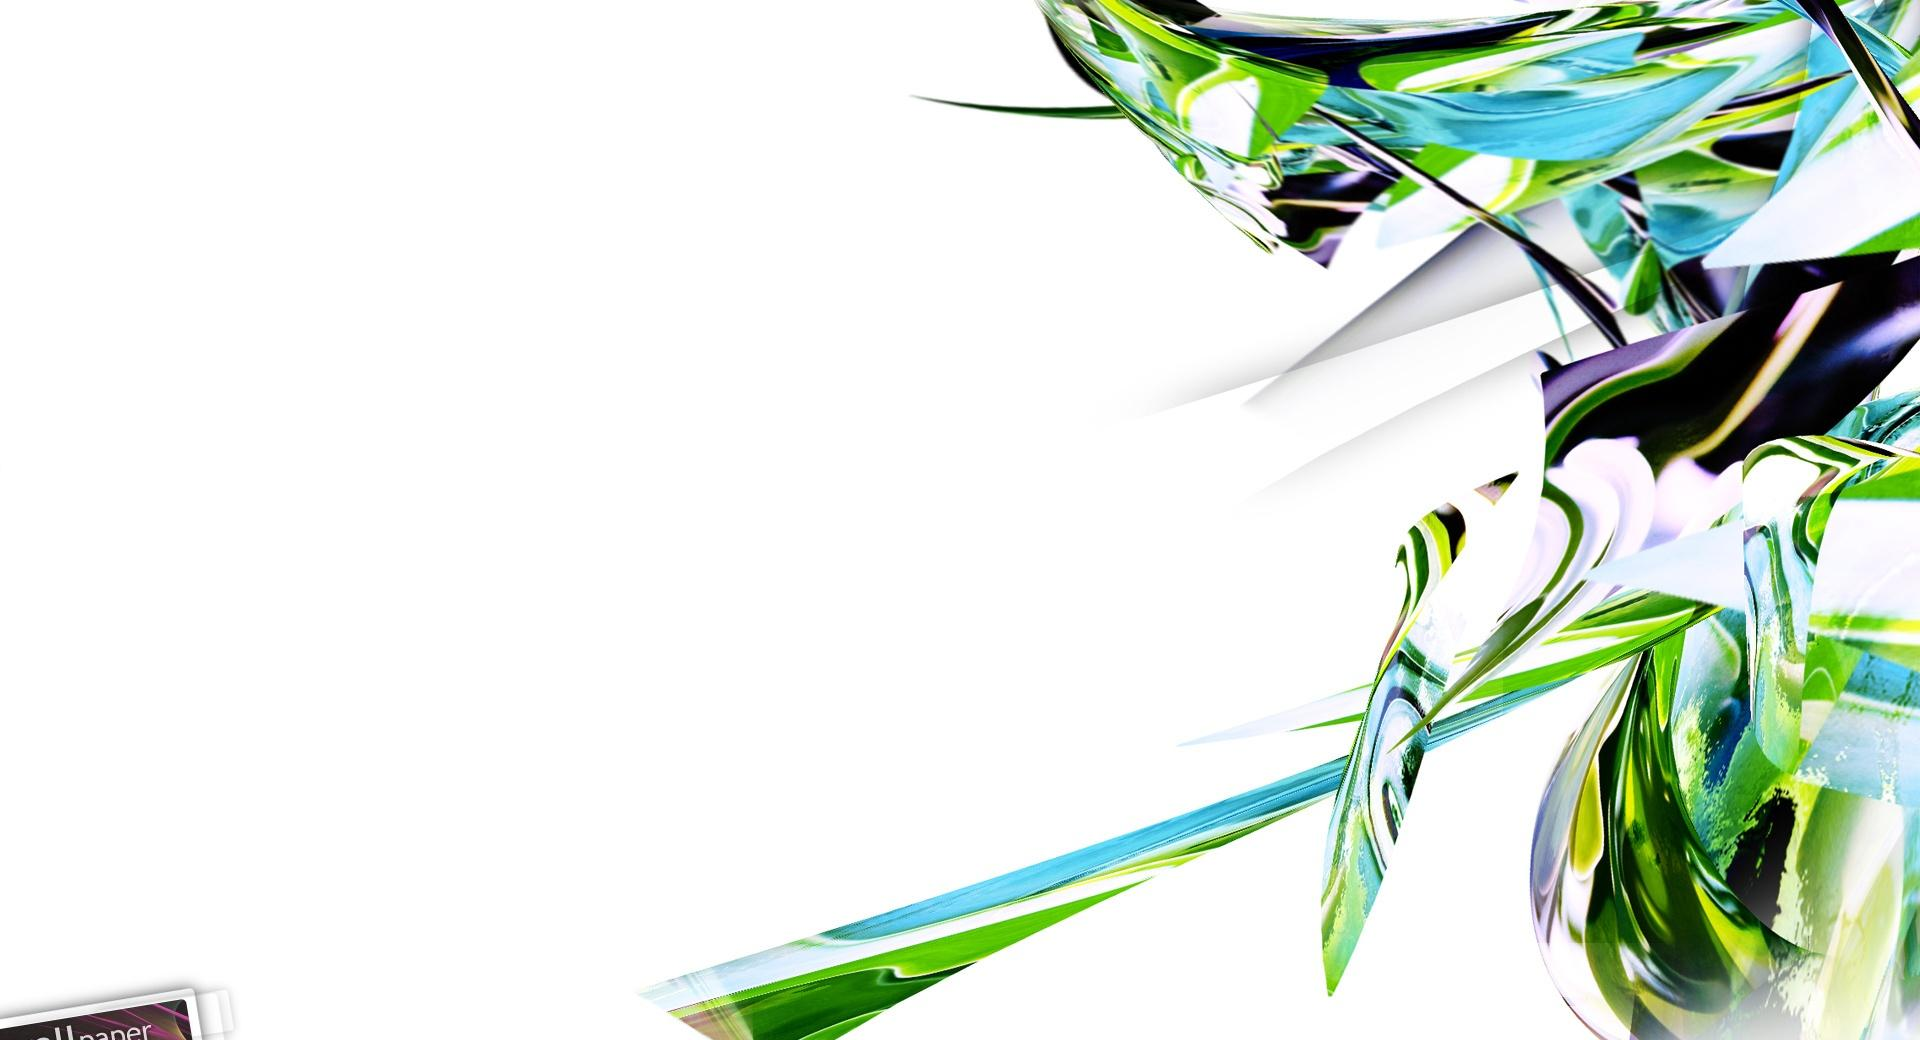 Abstract Design Background wallpapers HD quality